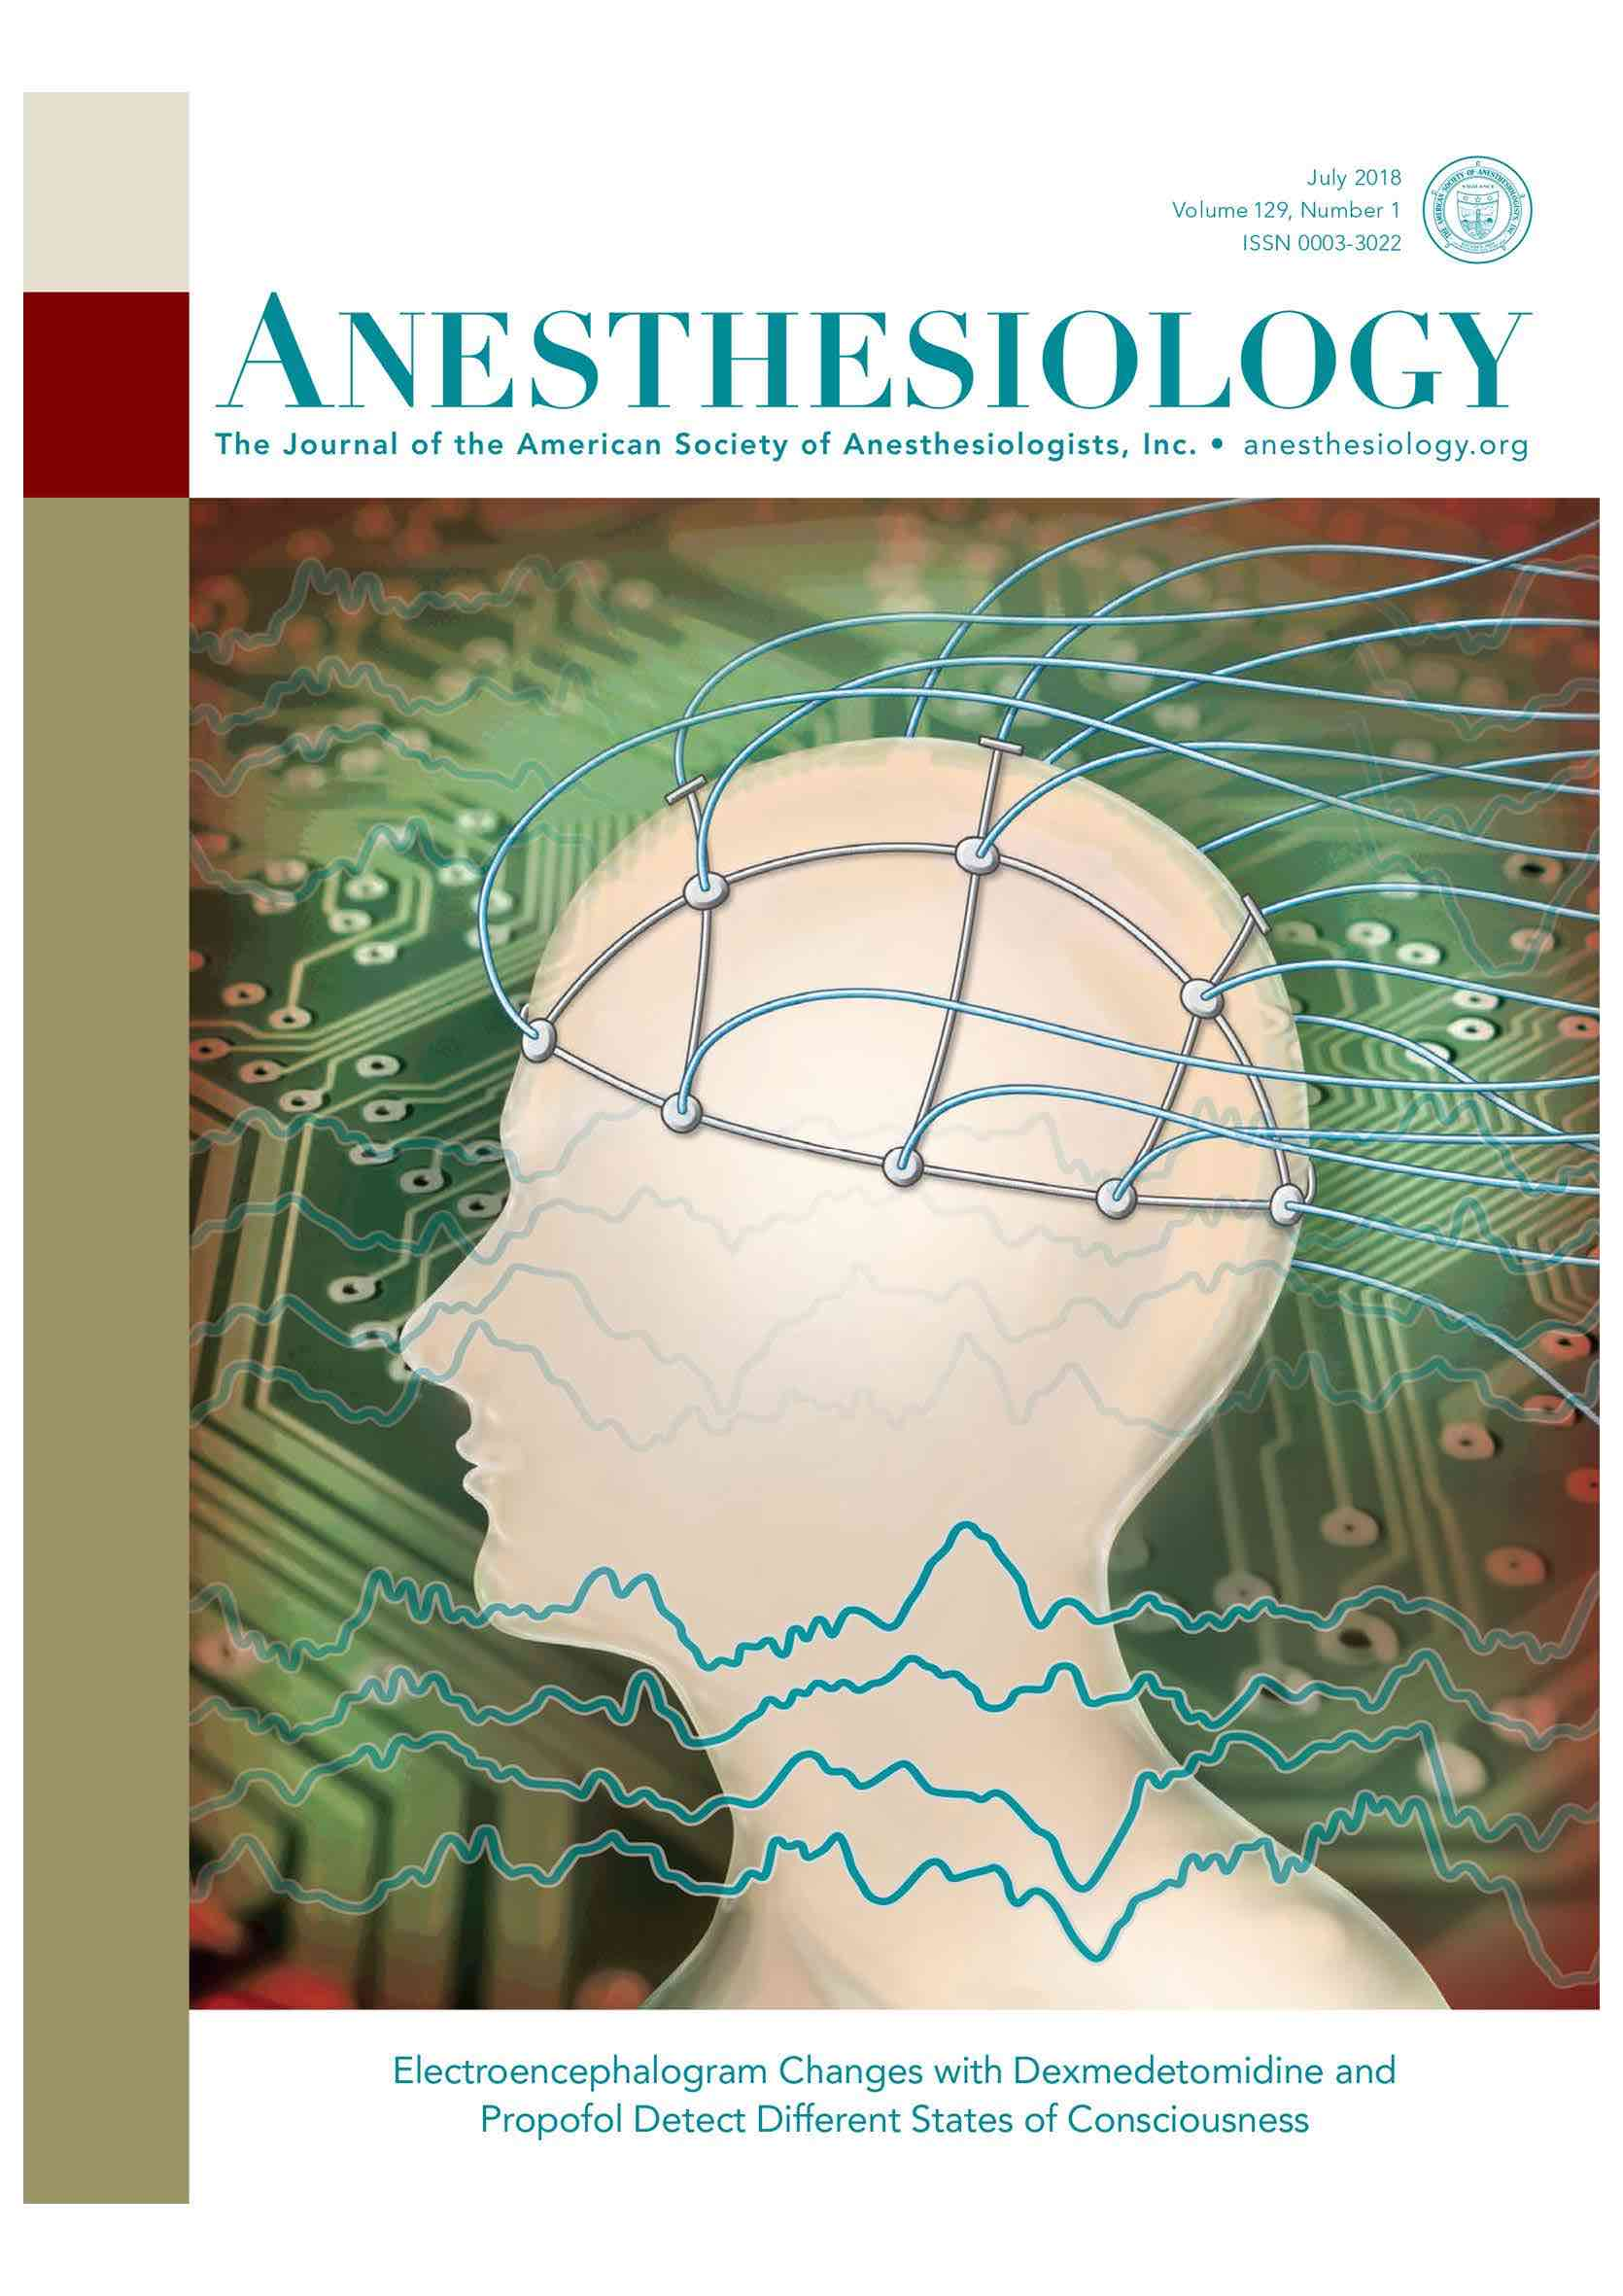 Anesthesiology_July2018_Cover2.jpg